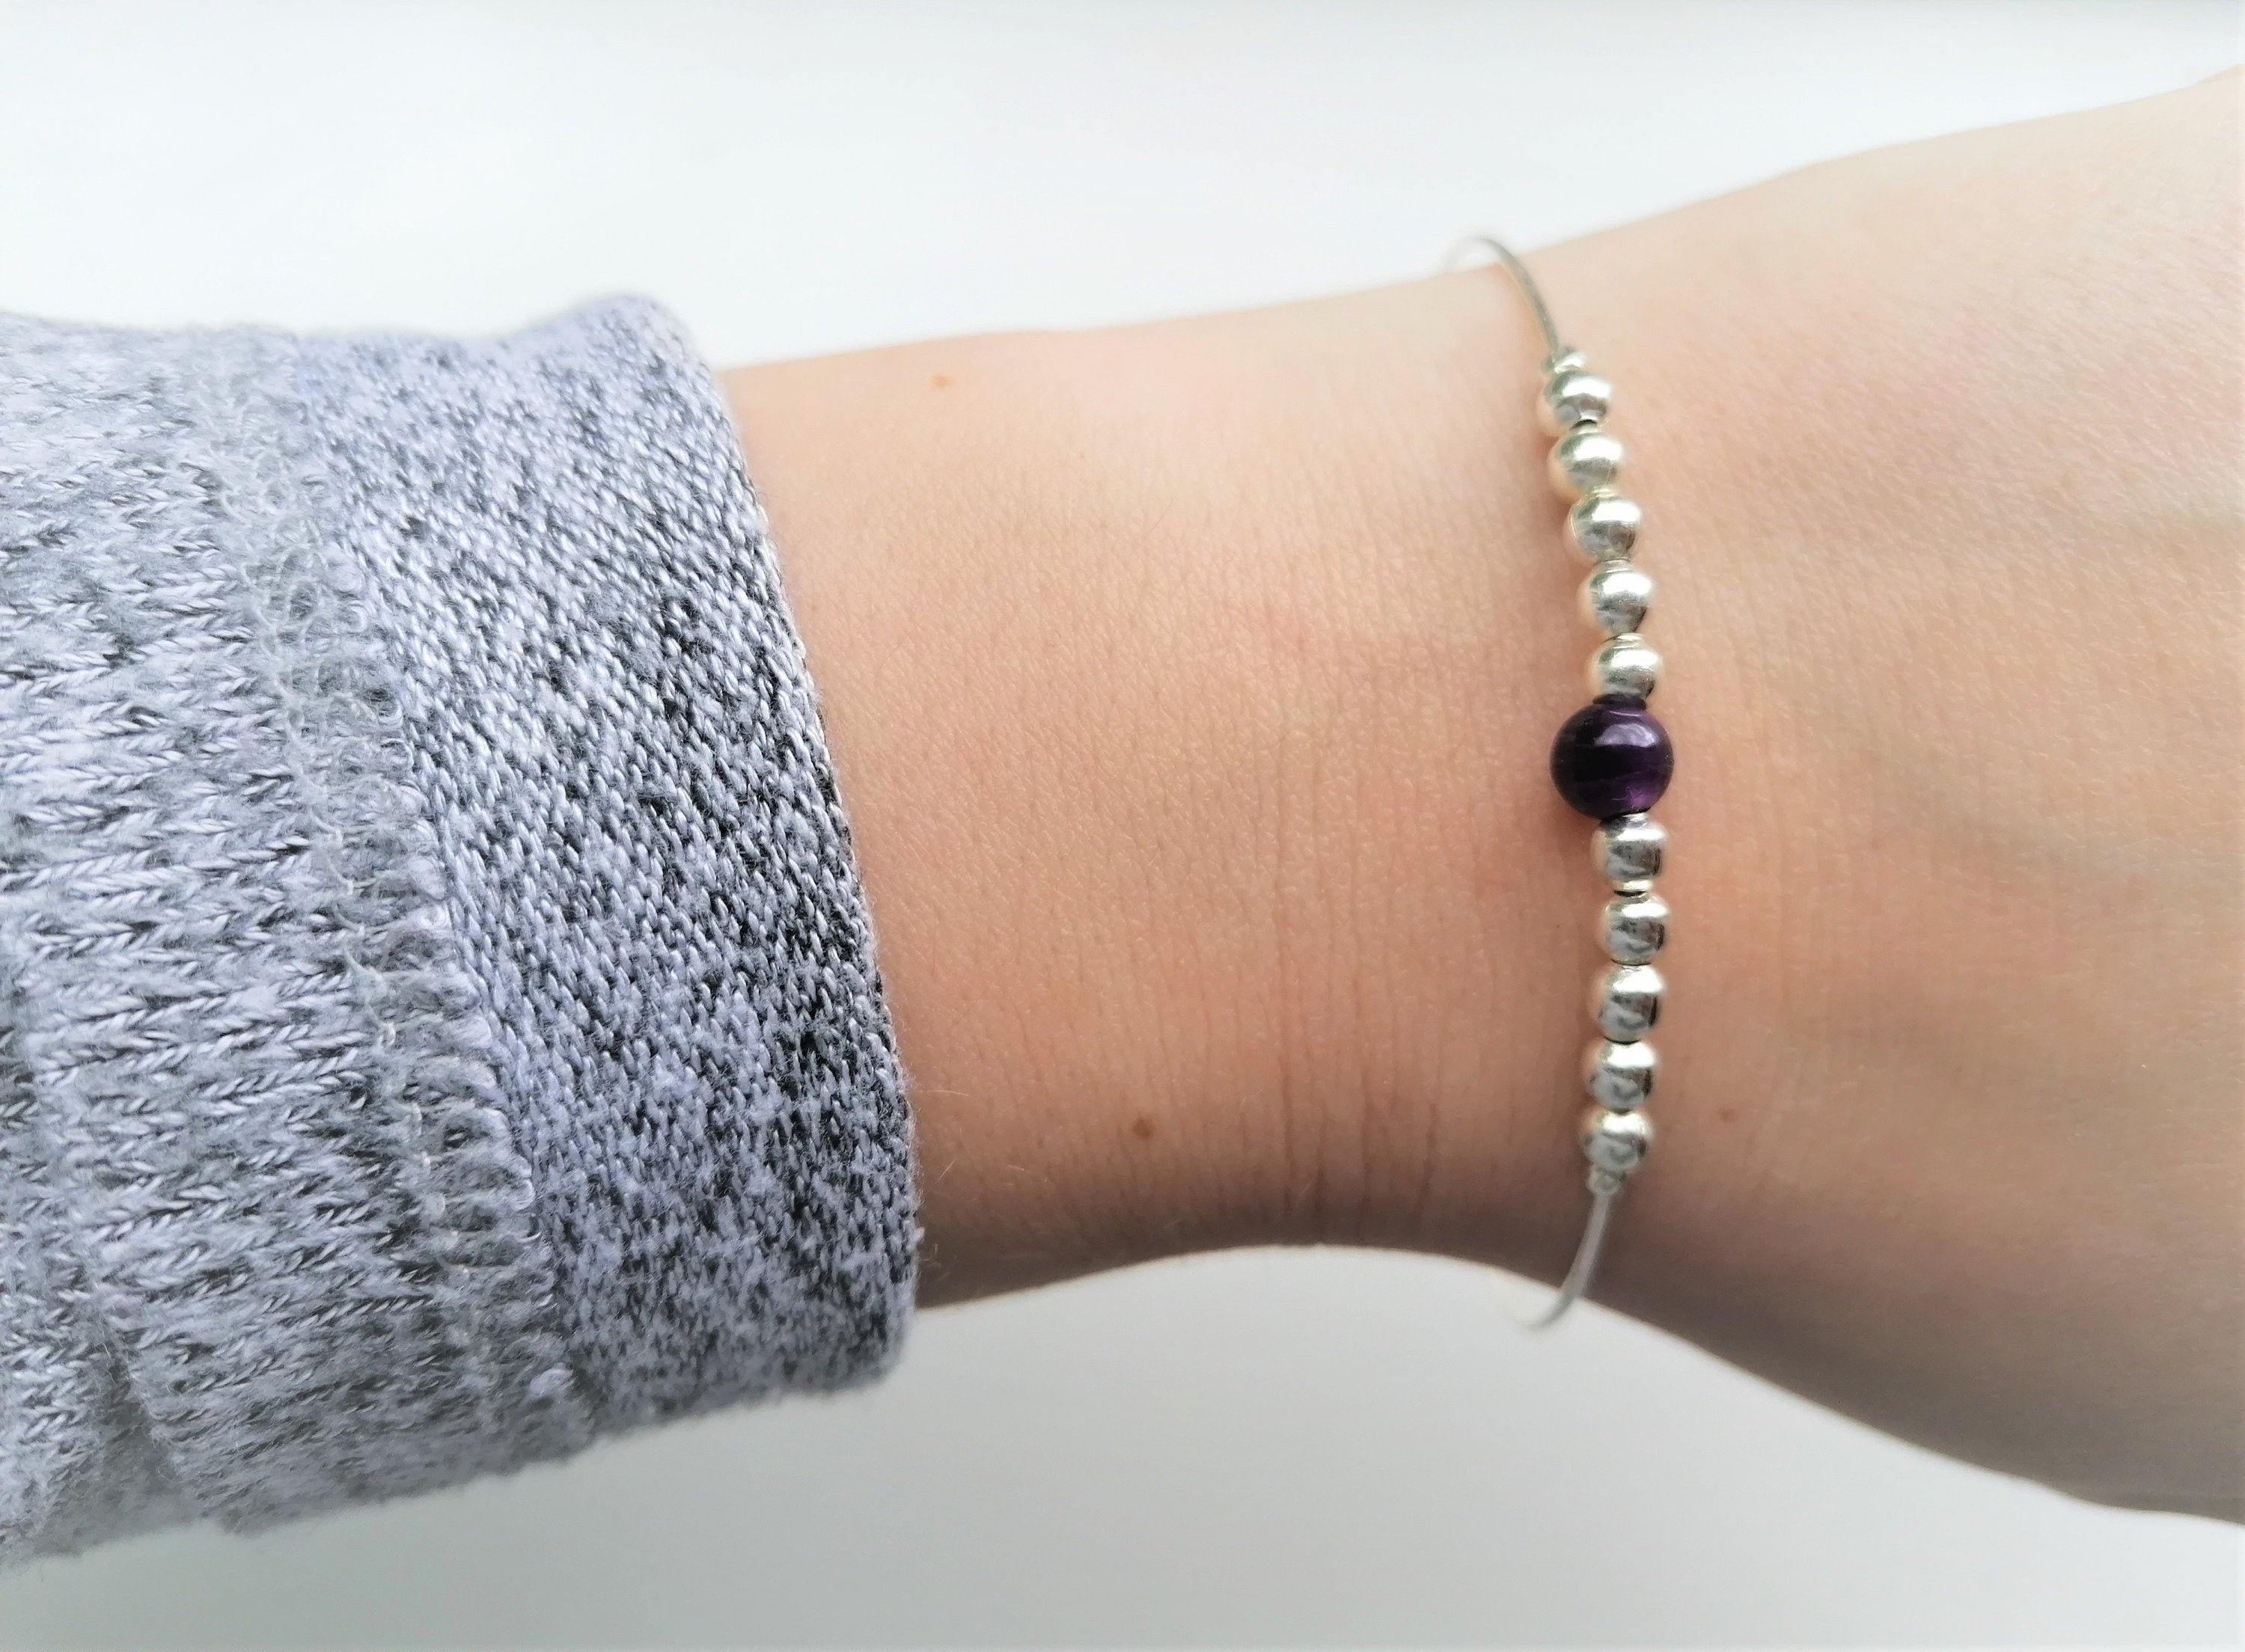 Amethyst Fidget Bangle - Small Beads - Worry Knot